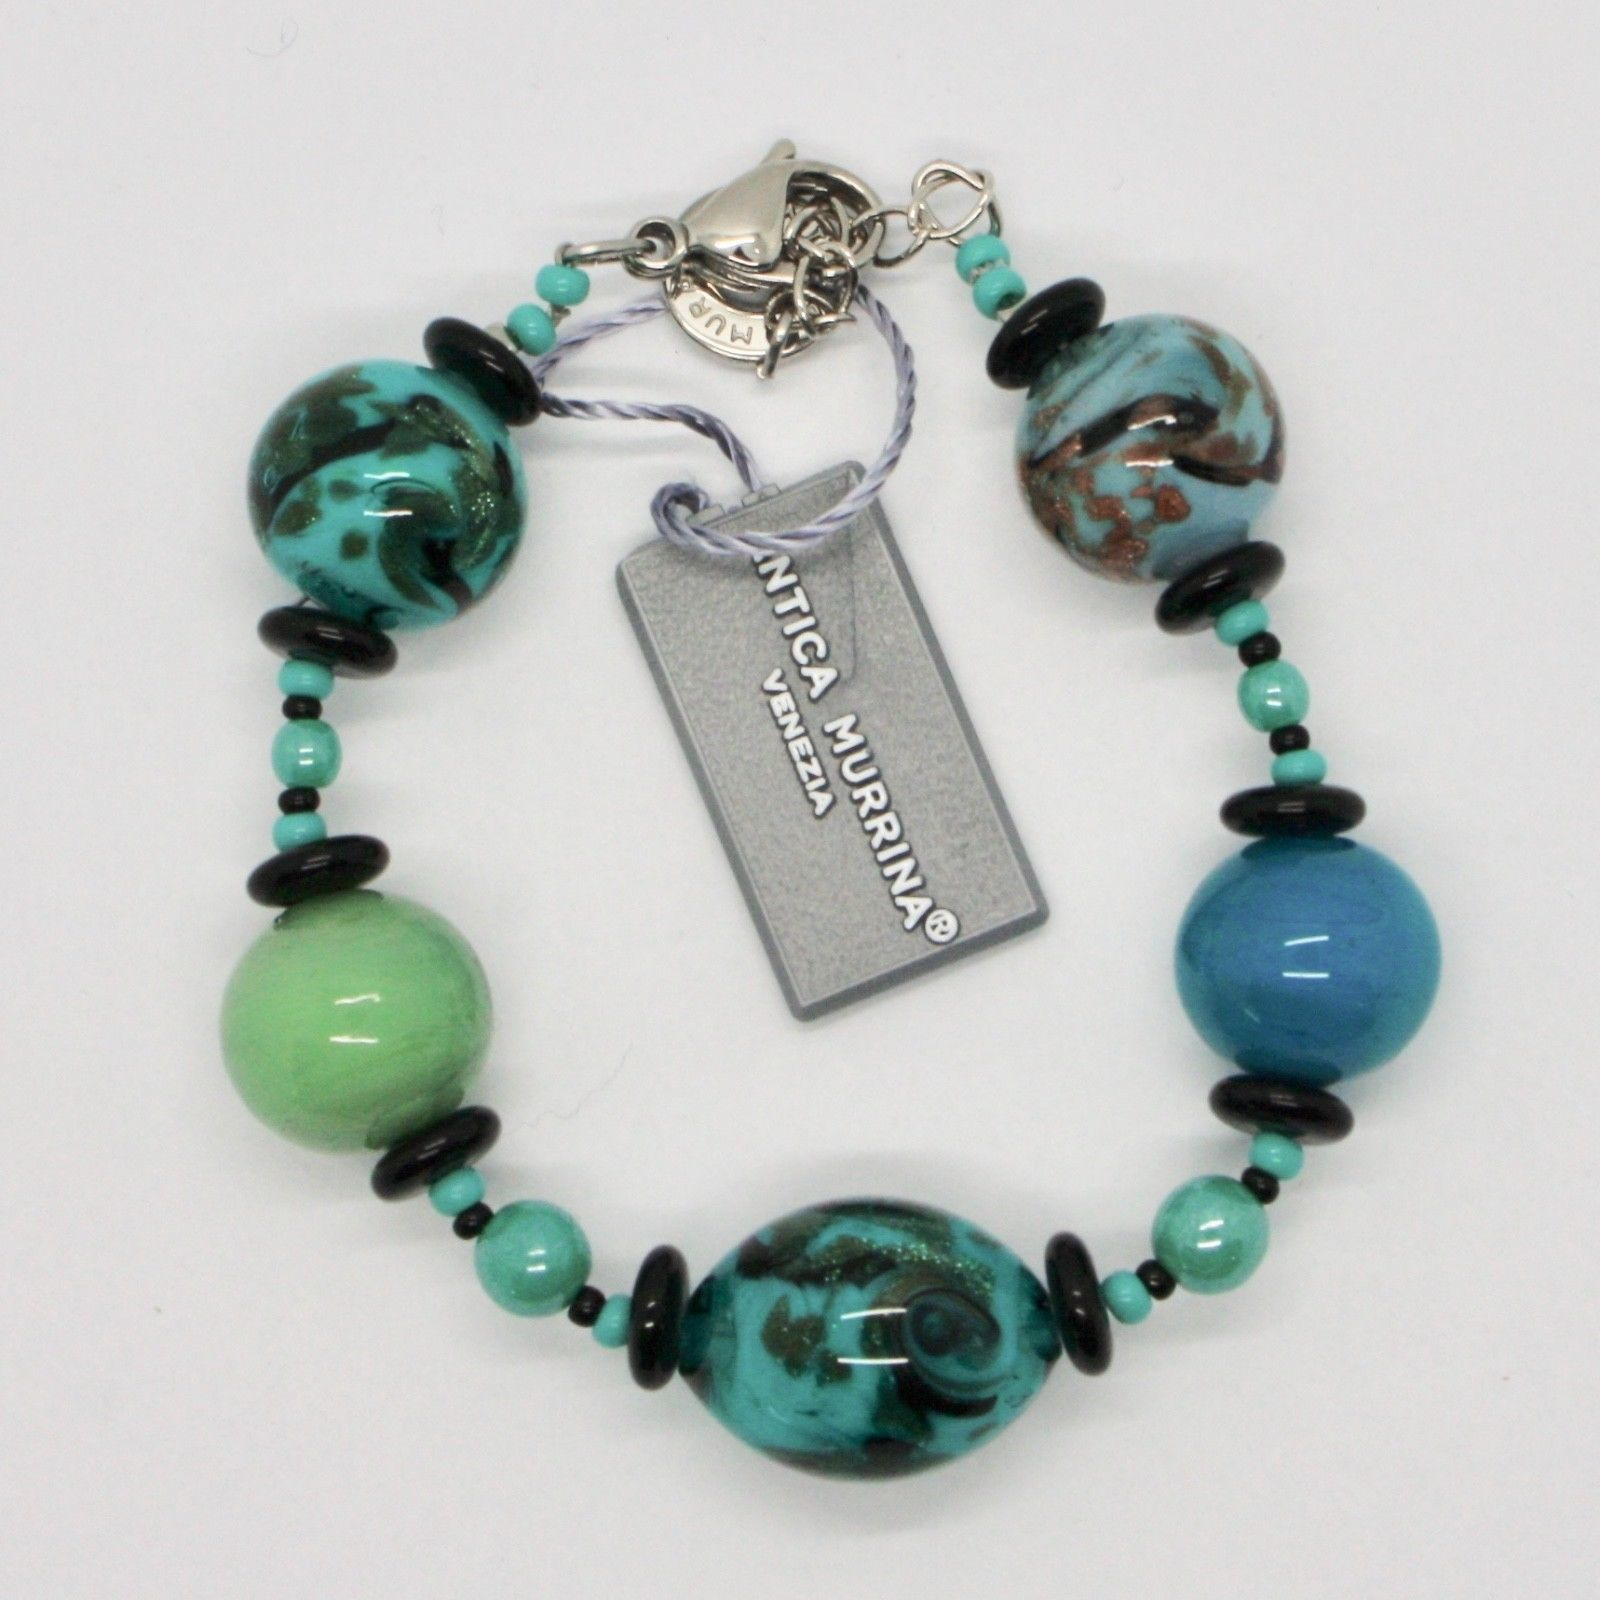 ANTICA MURRINA VENEZIA BRACELET WITH MURANO GLASS BLACK AND TURQUOISE BR801A59